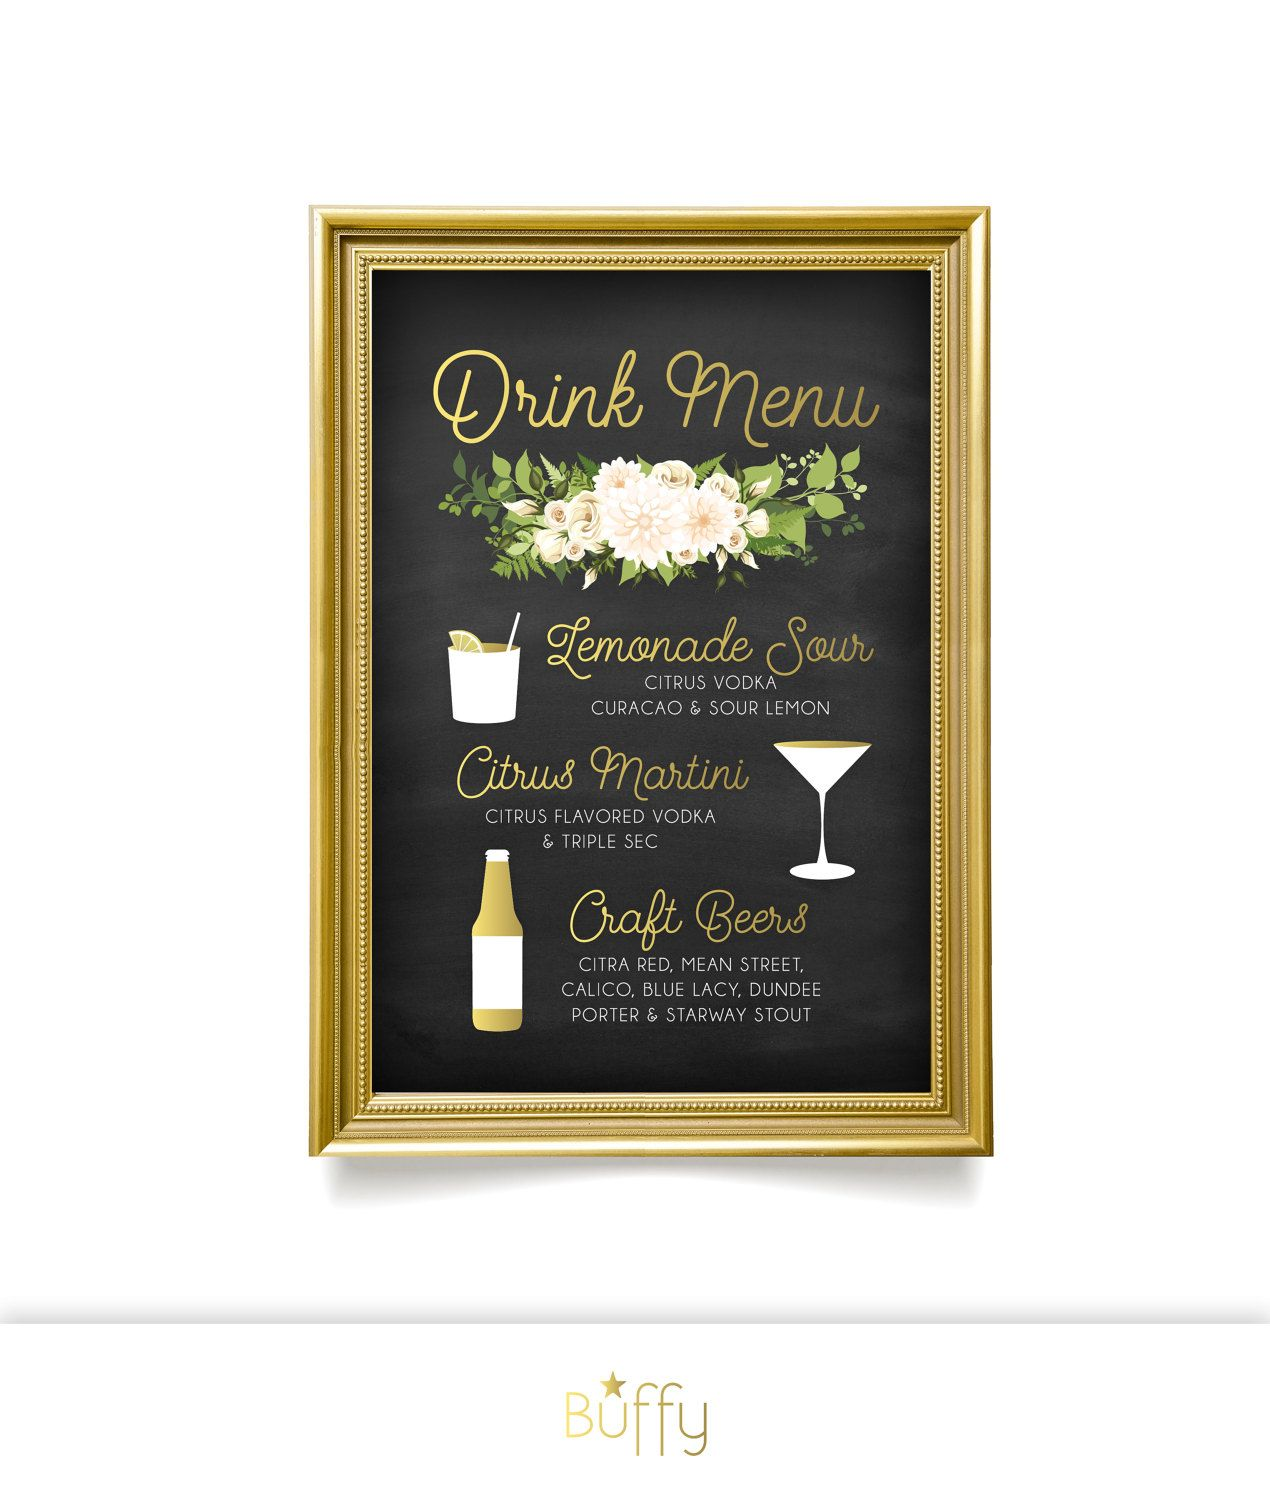 $35 on ETSY | The JAYLA . Drink Menu Sign . Fern Dahlia White Rose Garland & Gold Calligraphy Chalkboard . Martini Lemon Craft Beers Large Printed Wedding by BuffyWeddings on Etsy